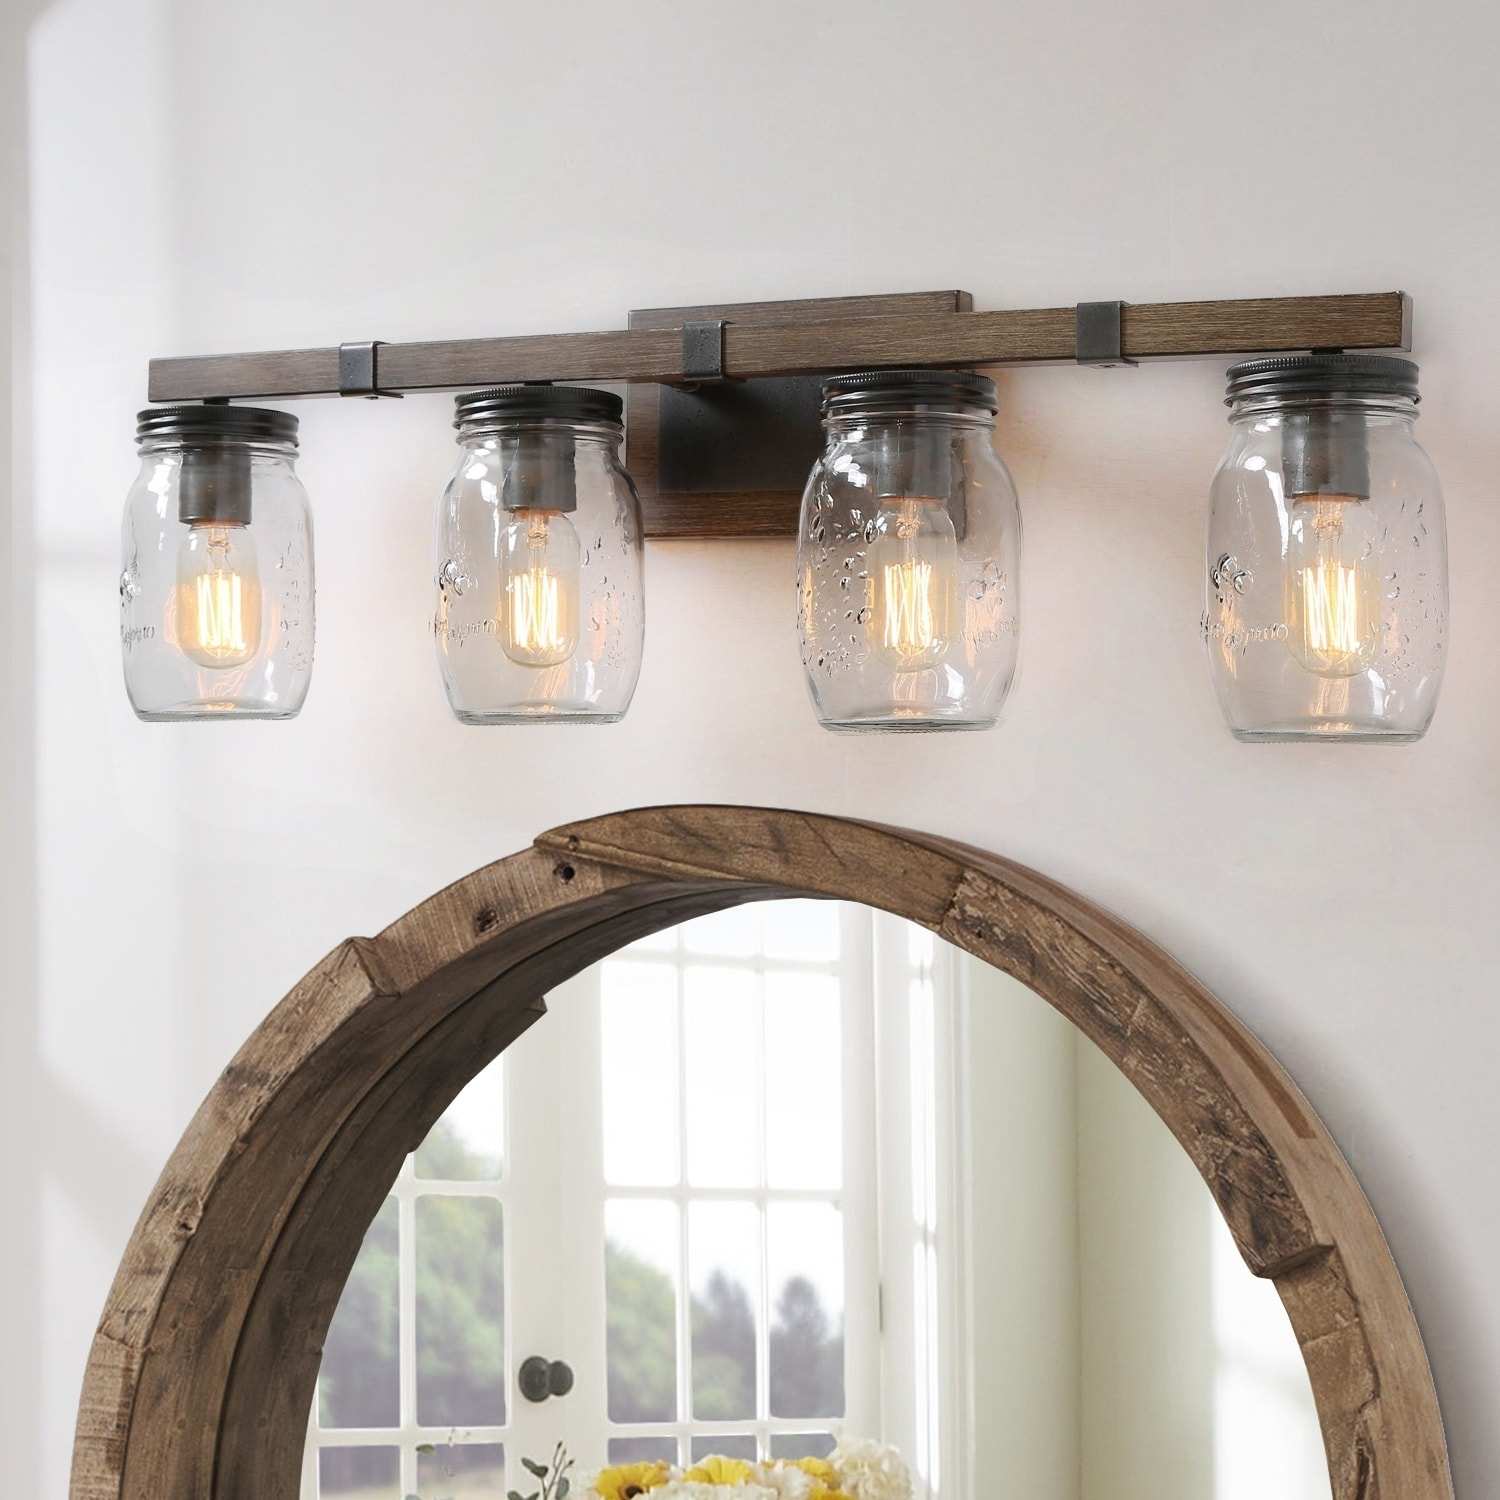 Shop Rustic 4 Lights Wall Sconce With Glass Shade Bathroom Lighting W29 Xh9 Xe6 Overstock 29775373